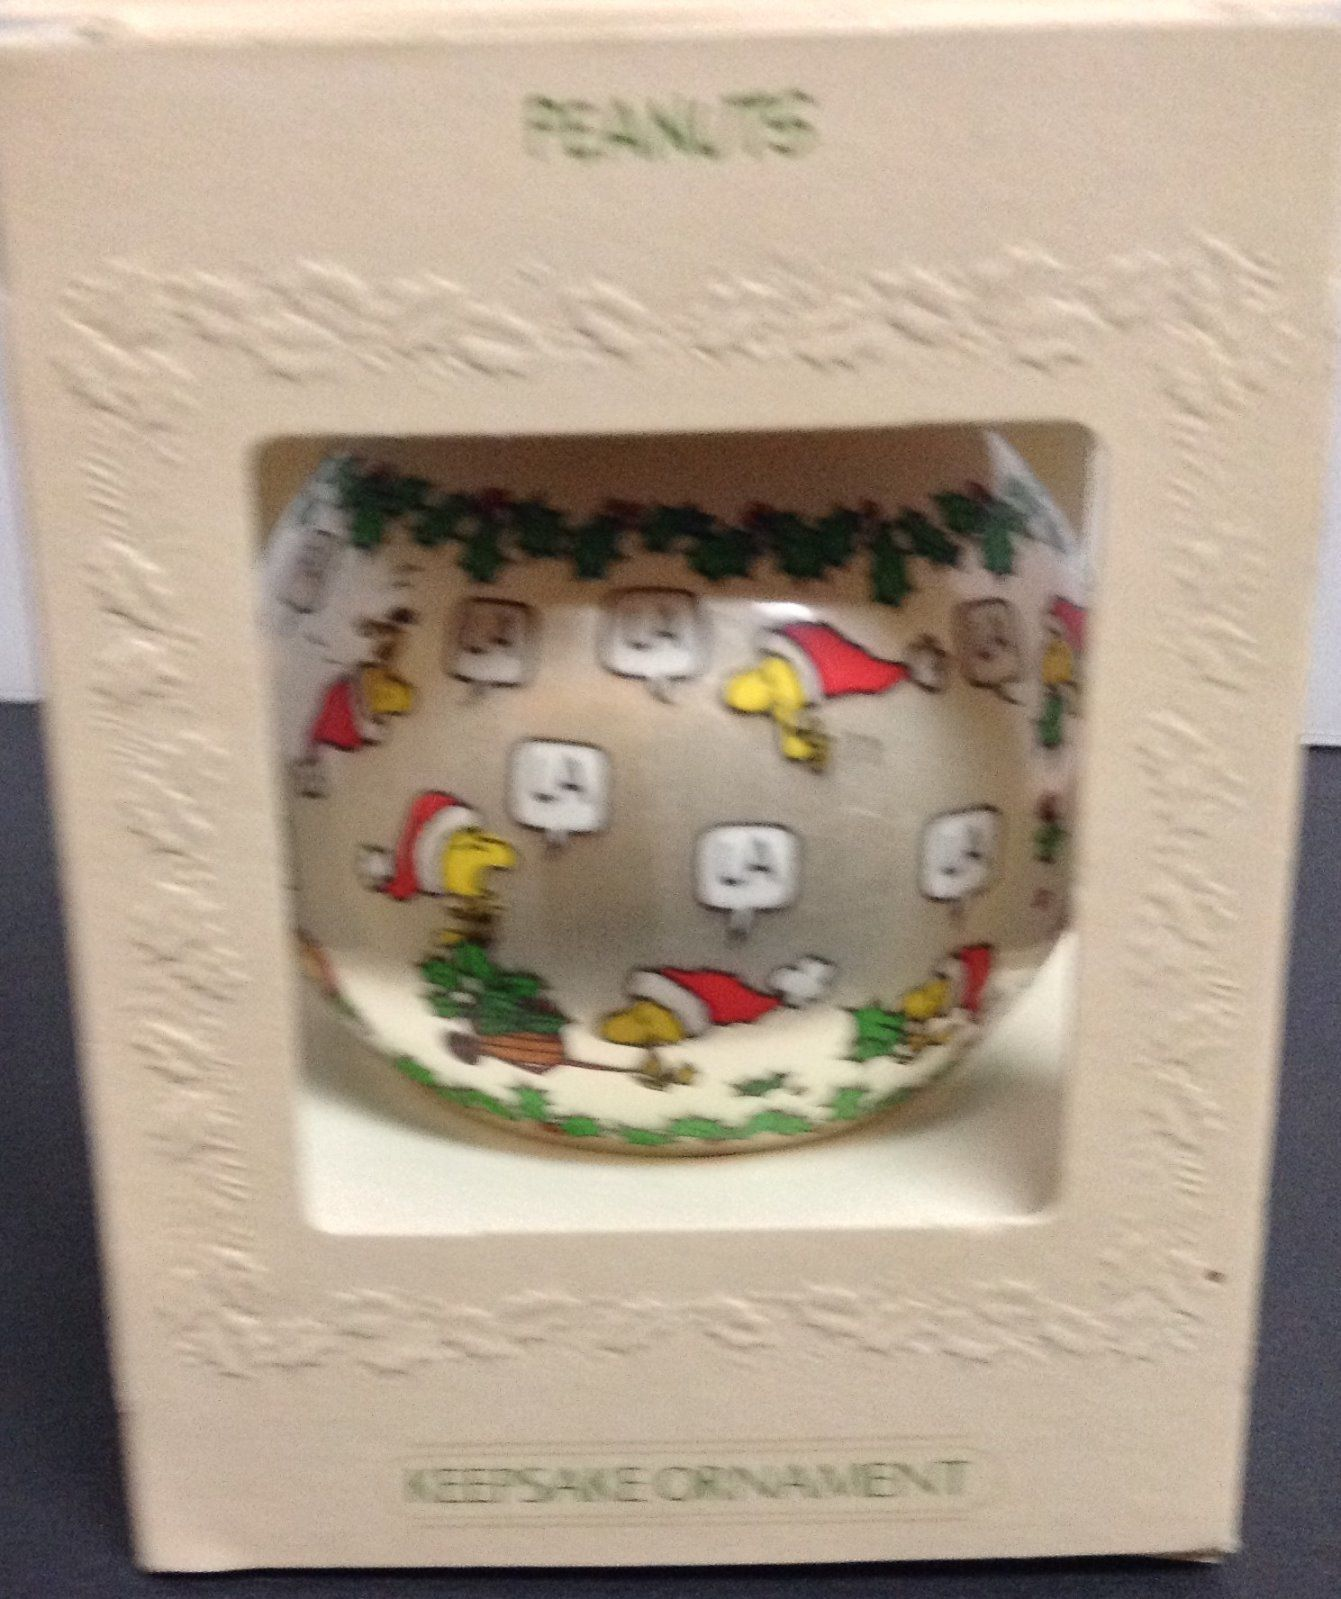 Vintage 1981 Peanuts Gang Satin Ball Christmas Ornament in Box Deck the Halls